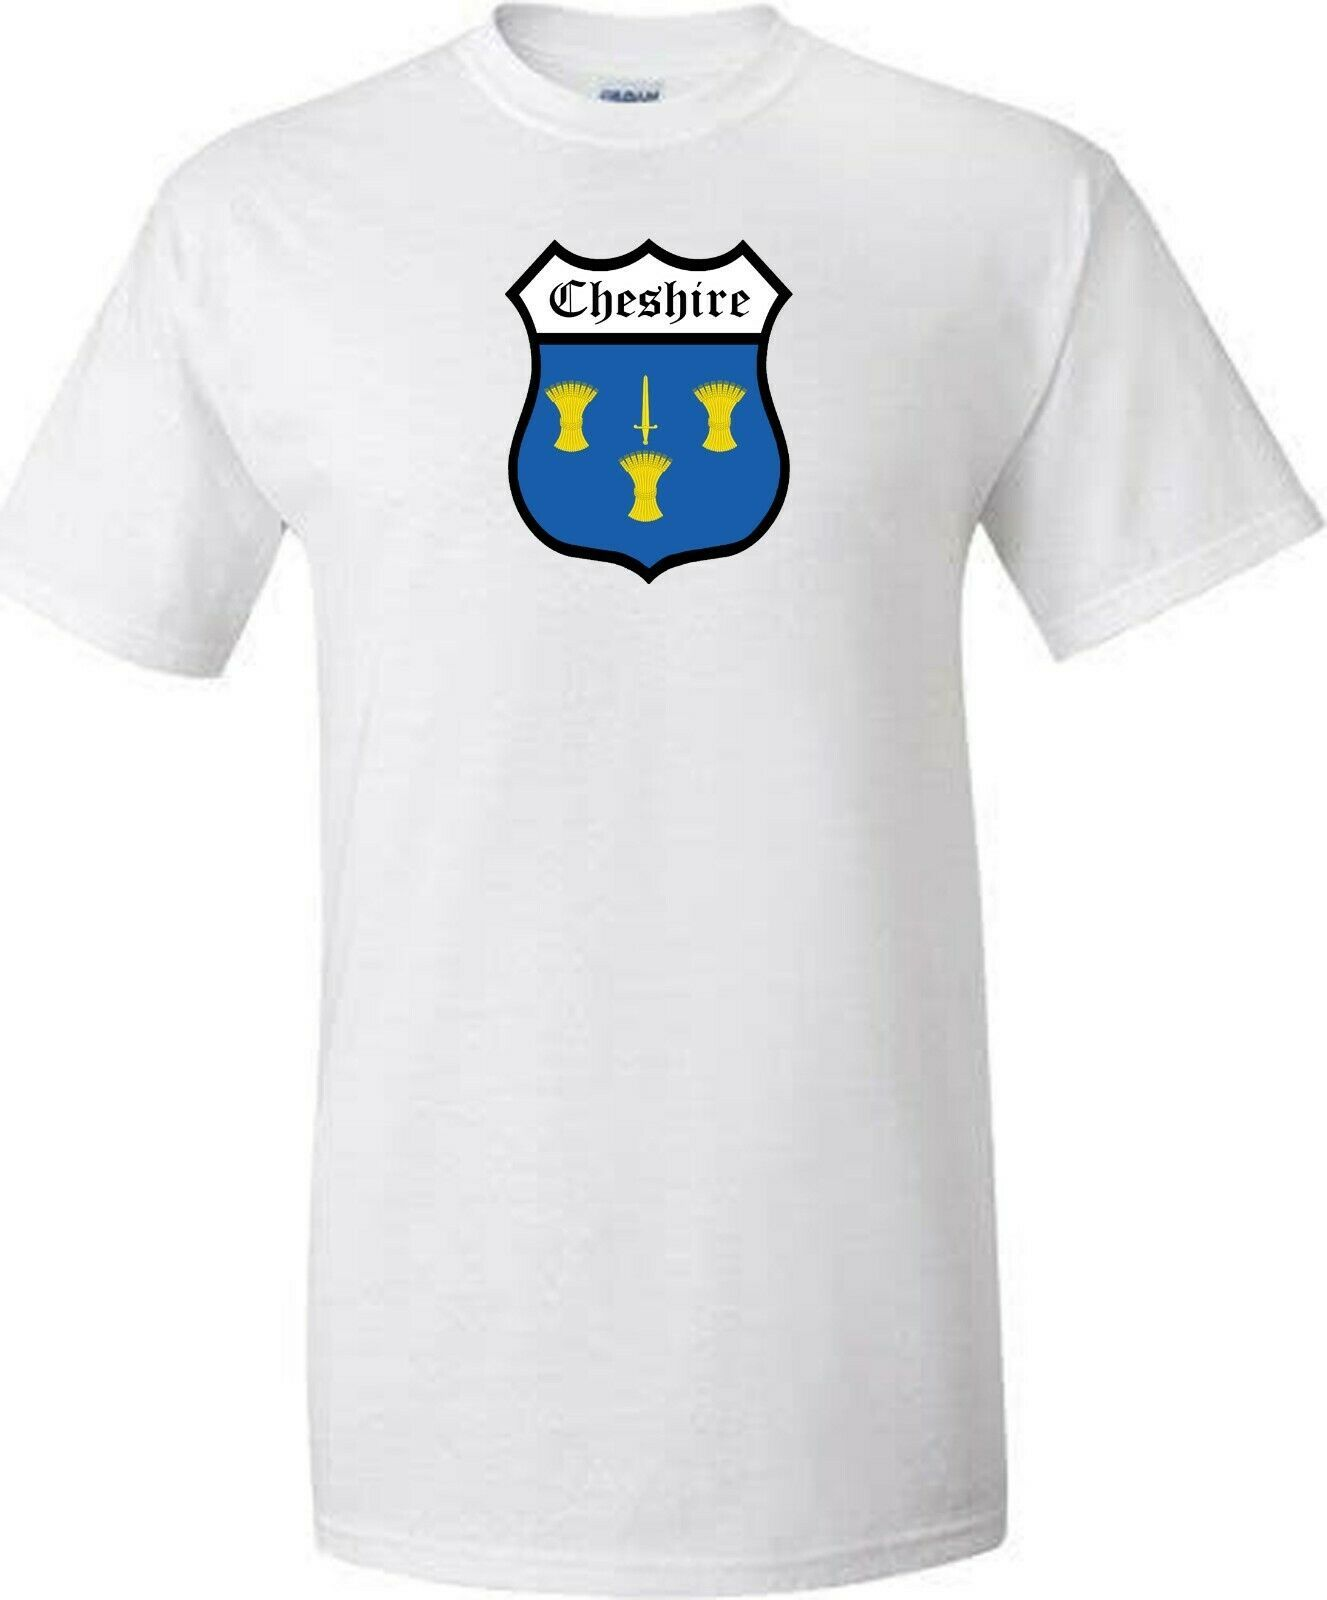 Cheshire t shirt iron on badge or stickers